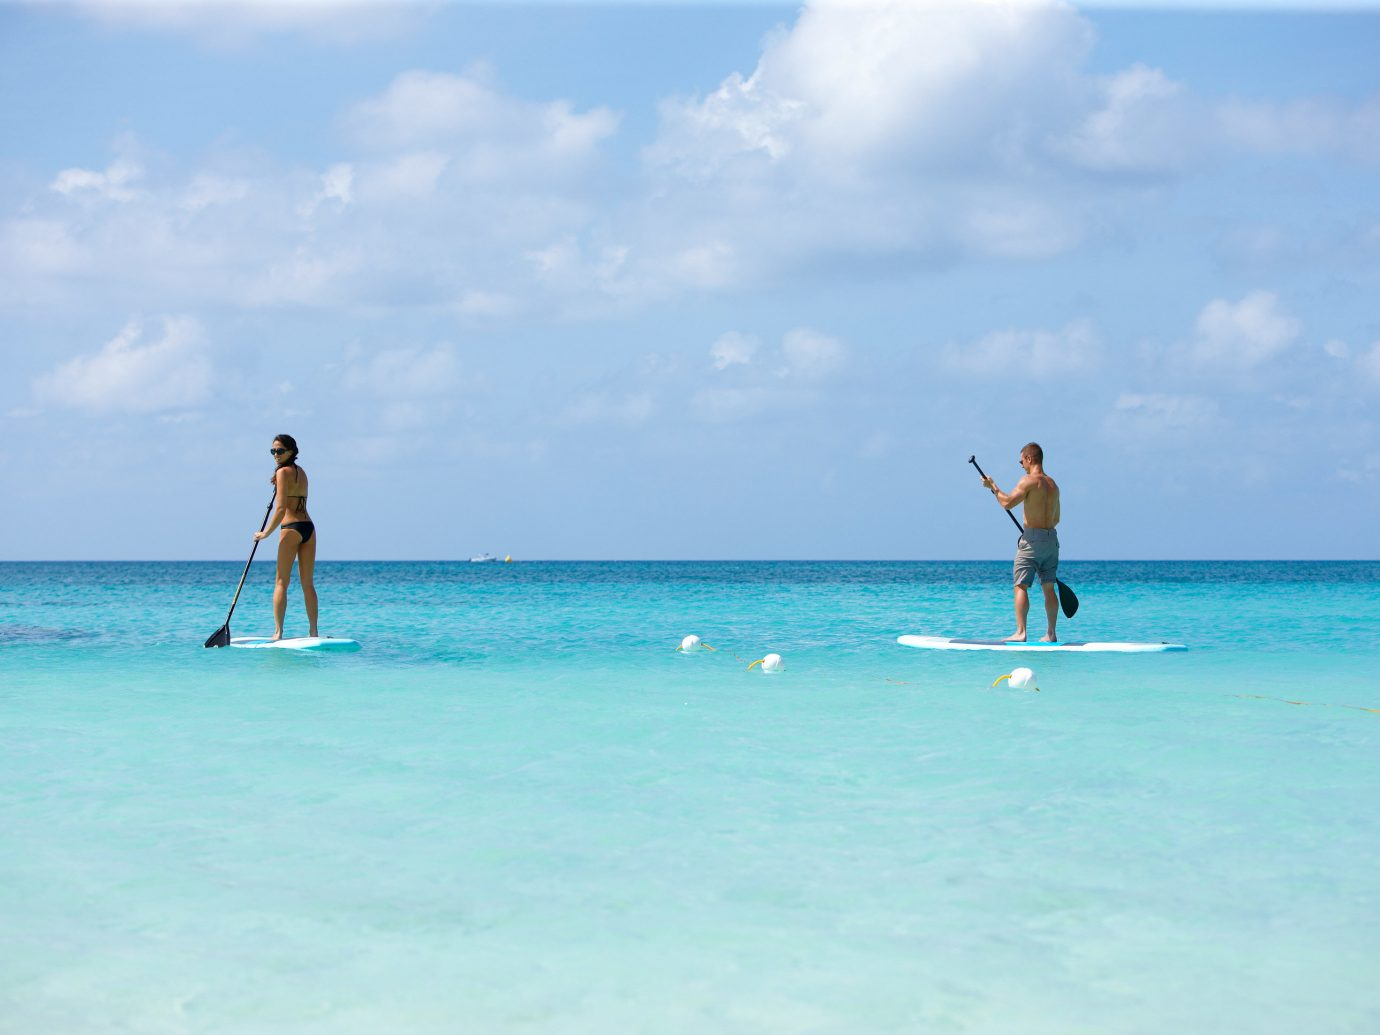 Hotels sky water outdoor Sea Beach blue Ocean body of water vacation caribbean shore wind wave Nature Island cape Coast wave Lagoon bay surfing equipment and supplies day